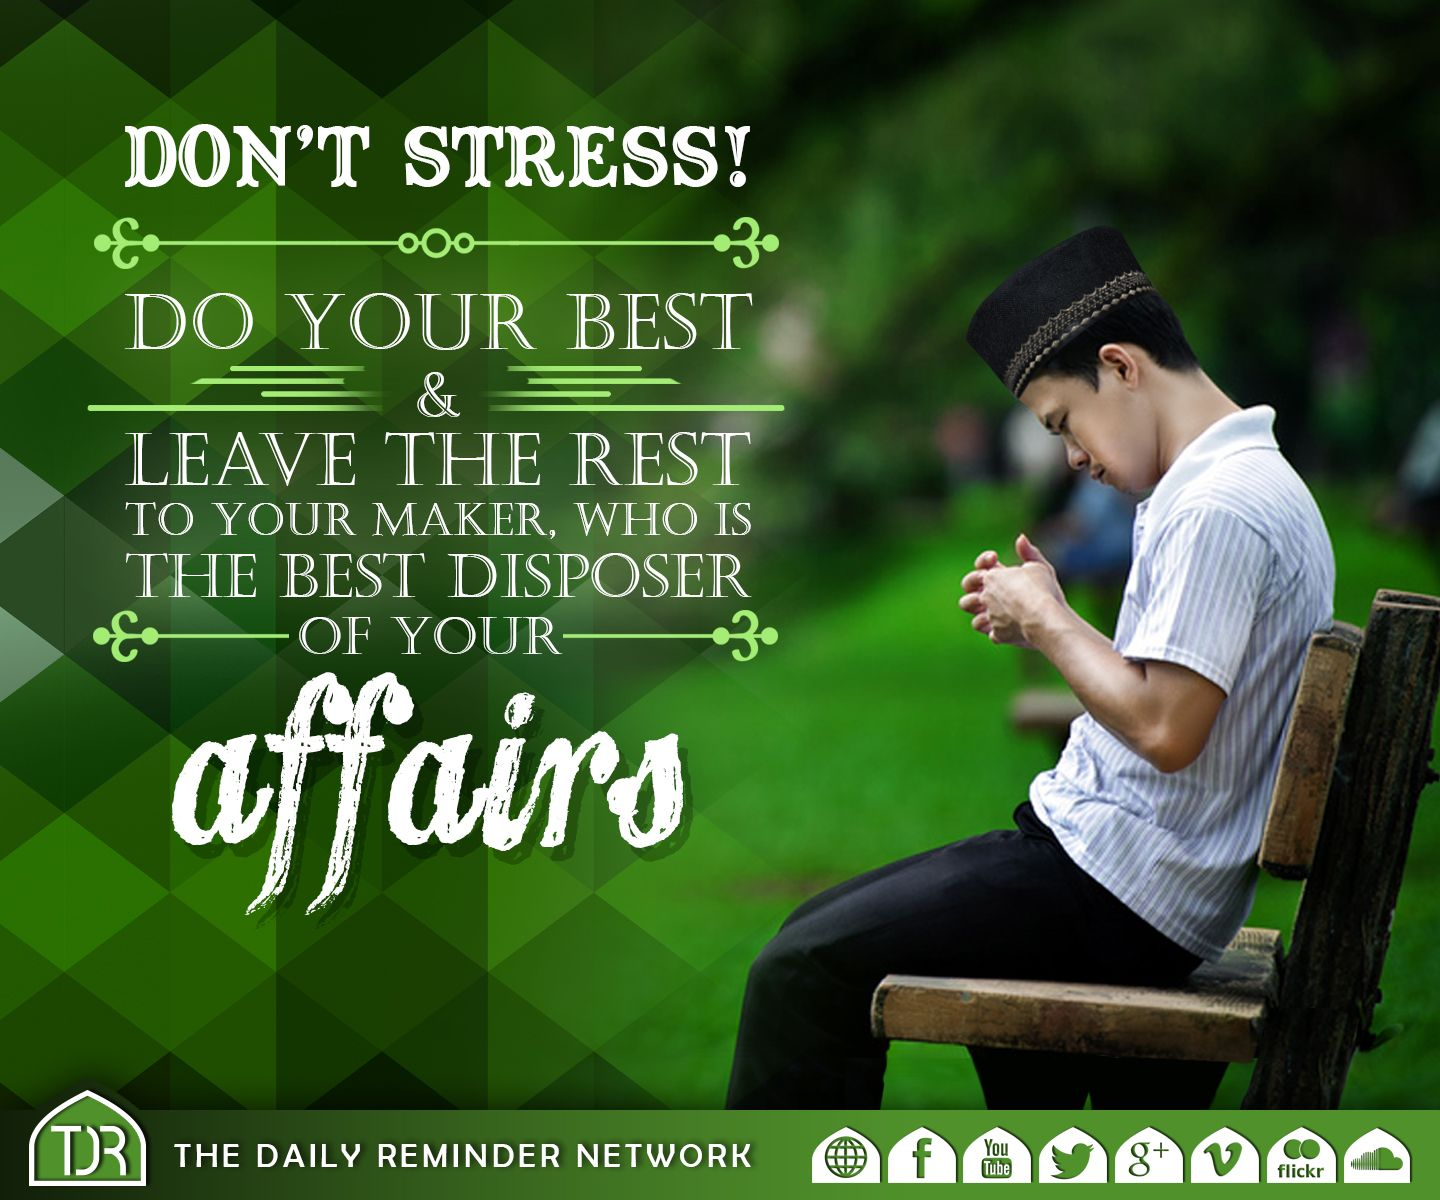 Don't Stress! Do Your Best & Leave The Rest To Your Maker